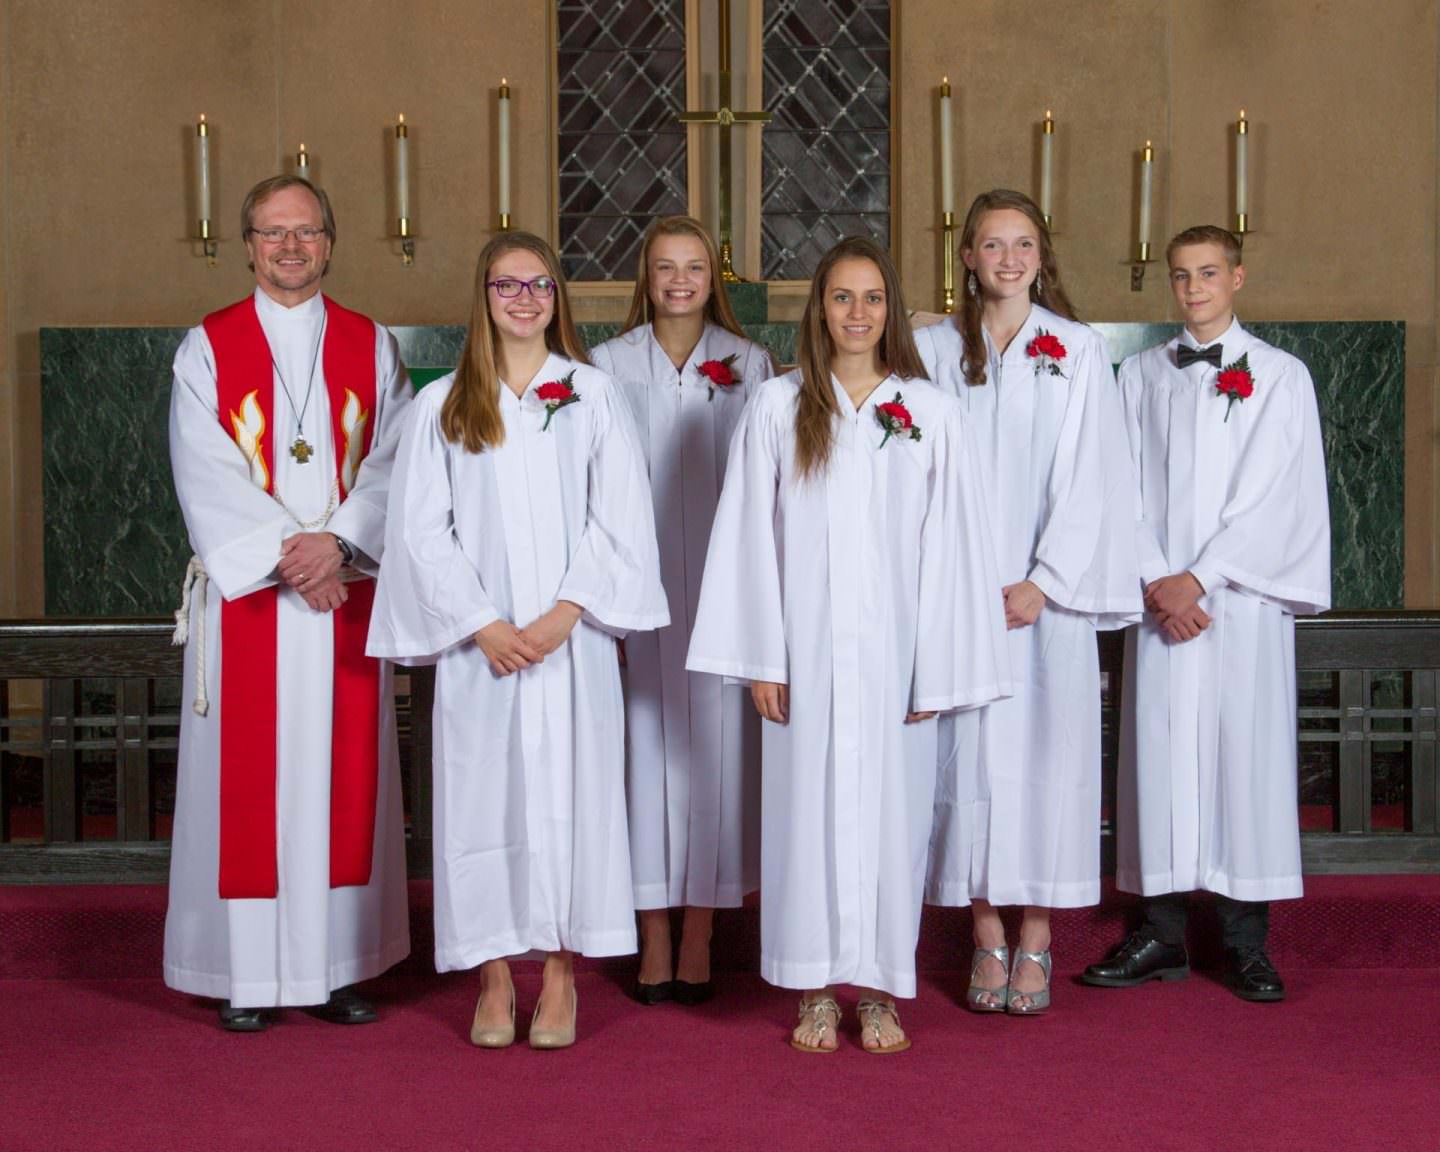 St-Tims-2017-Confirmation-1834-1440x1152.jpg